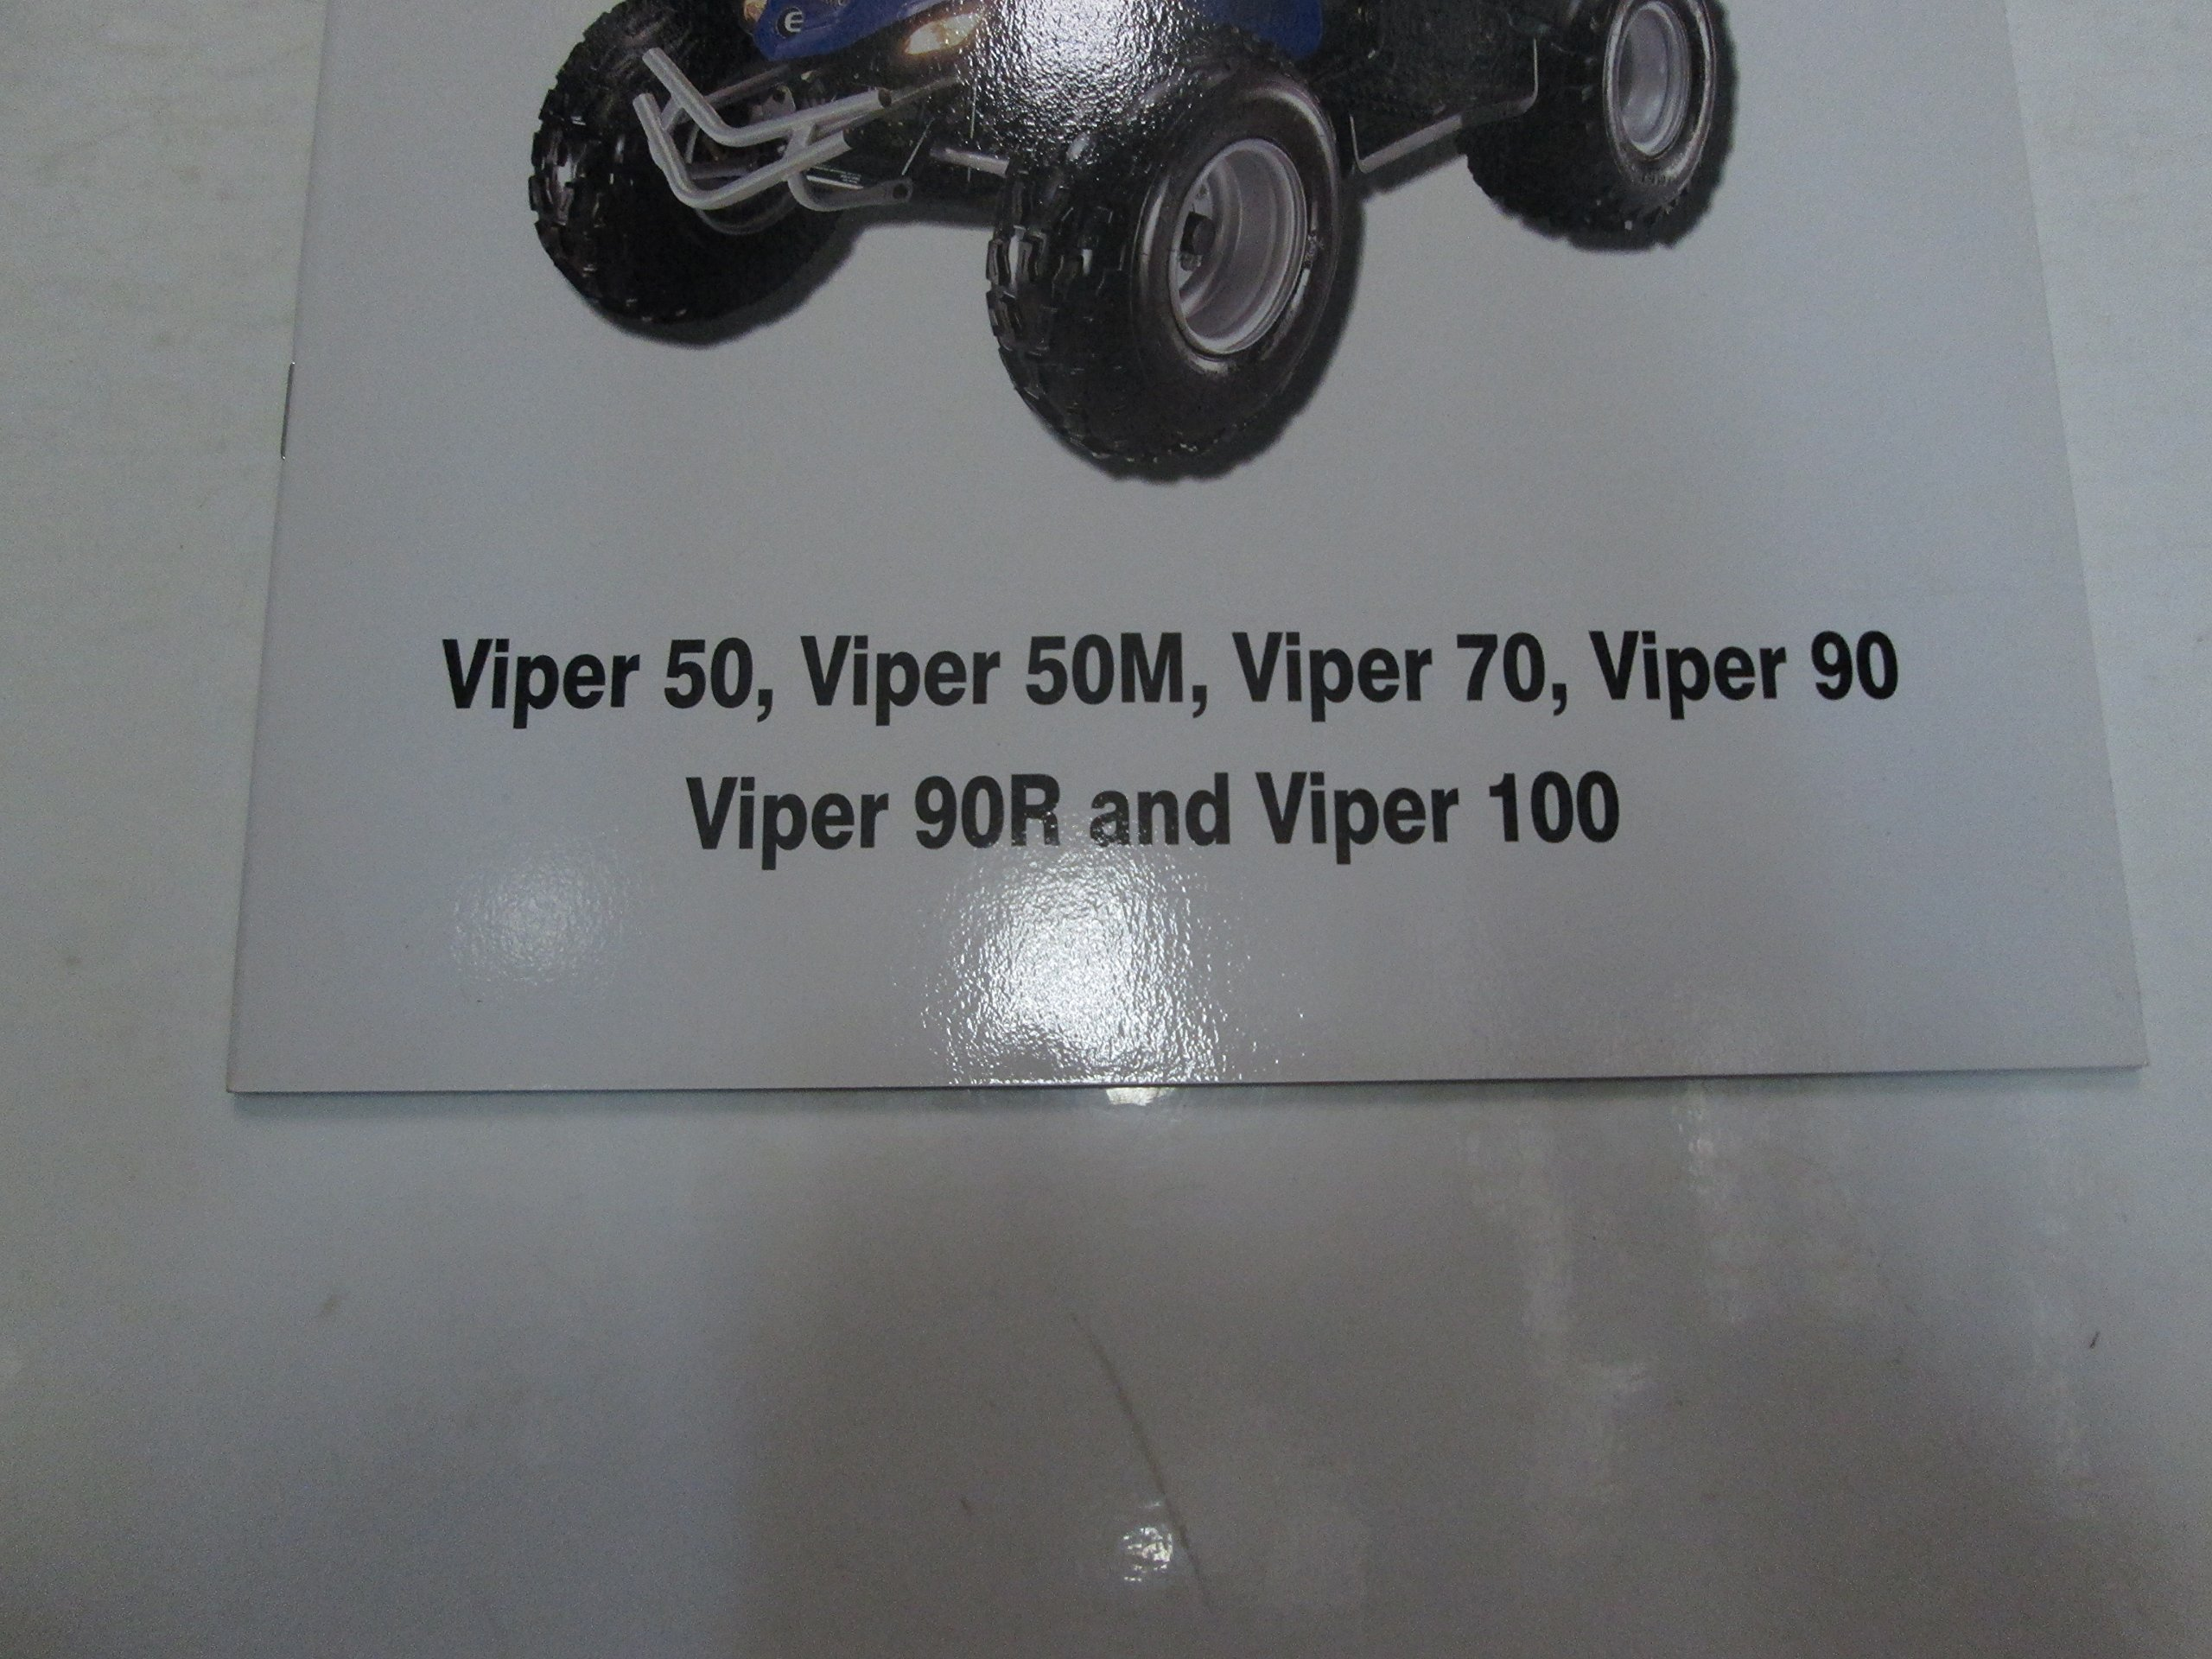 2005 E-Ton Viper 50 50M 70 90 90R 100 Owners Manual FACTORY OEM DEALERSHIP  ***: E-TON: Amazon.com: Books